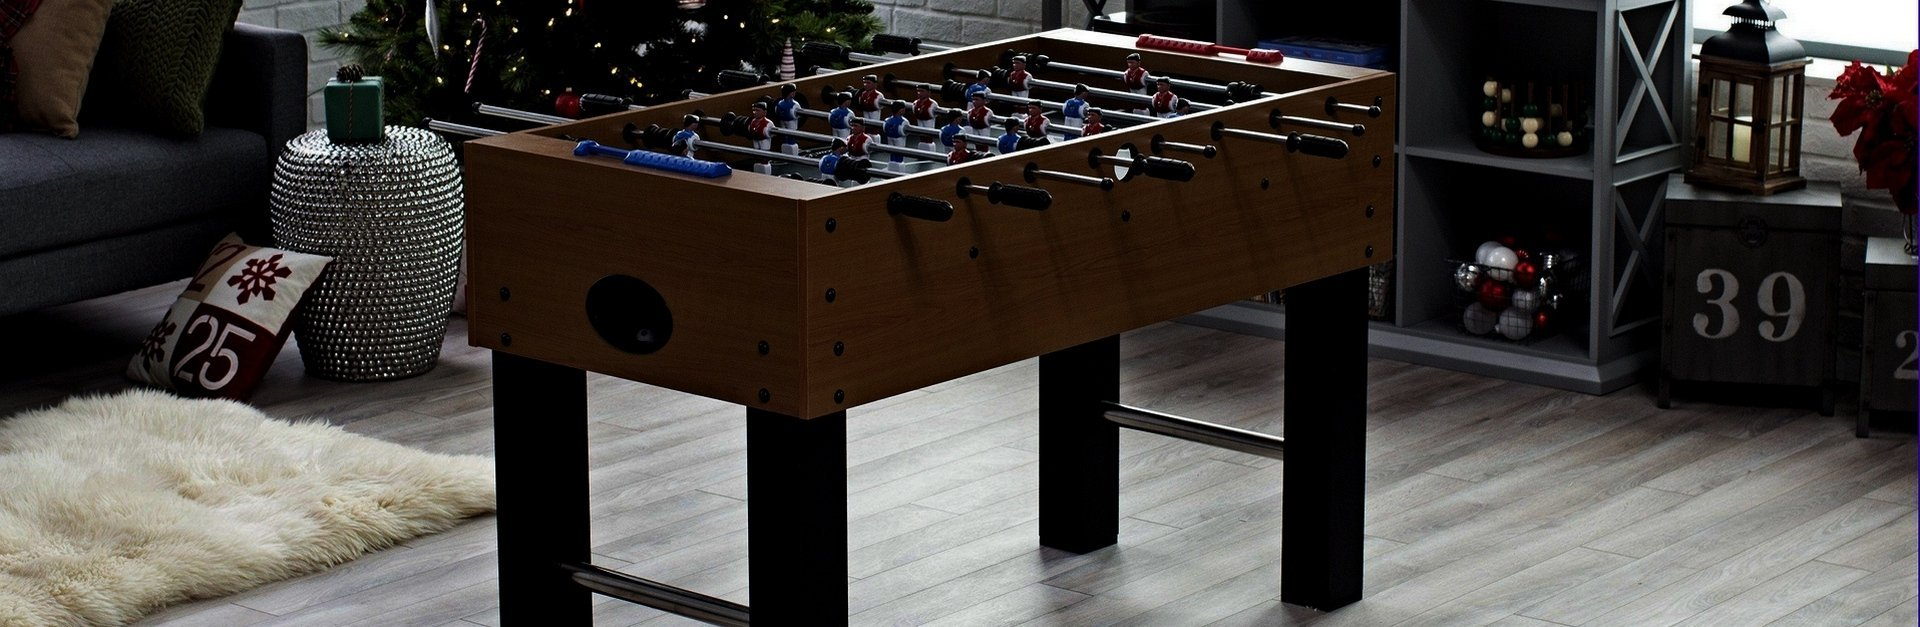 12 Best Foosball Tables Apr 2020 Reviews Buying Guide